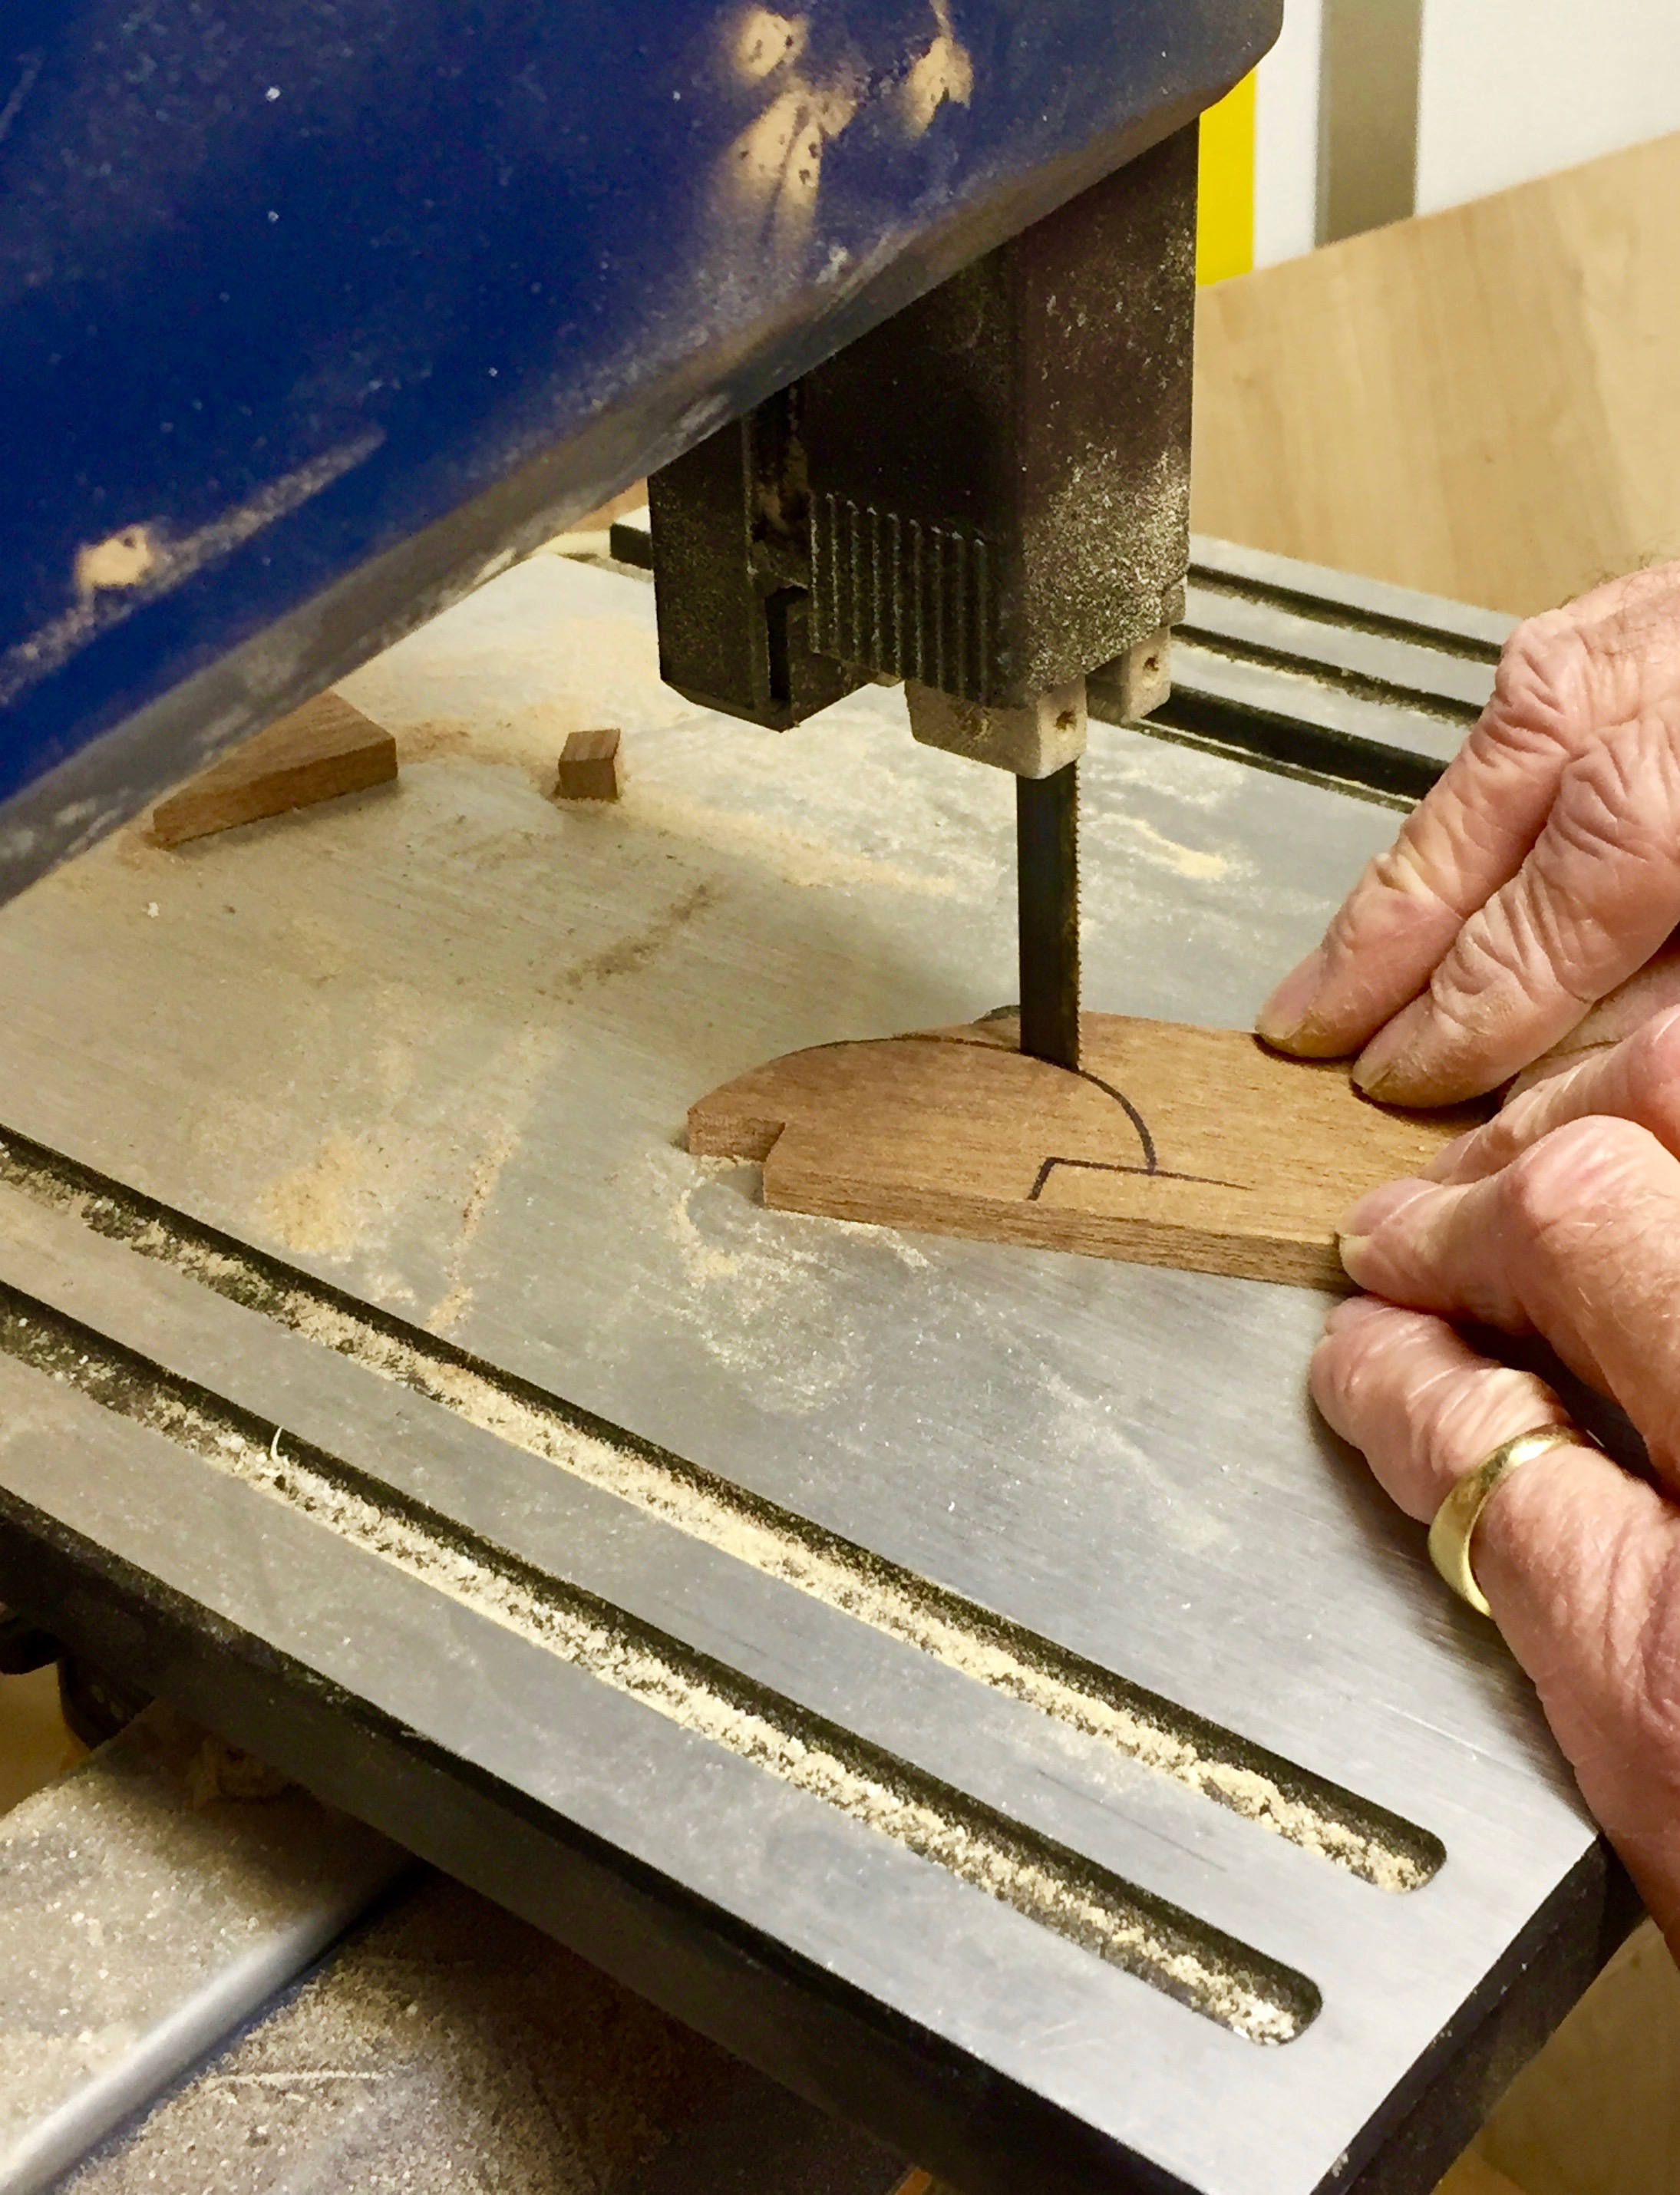 Cutting mahogany handles for Mardi Gras cabinets.